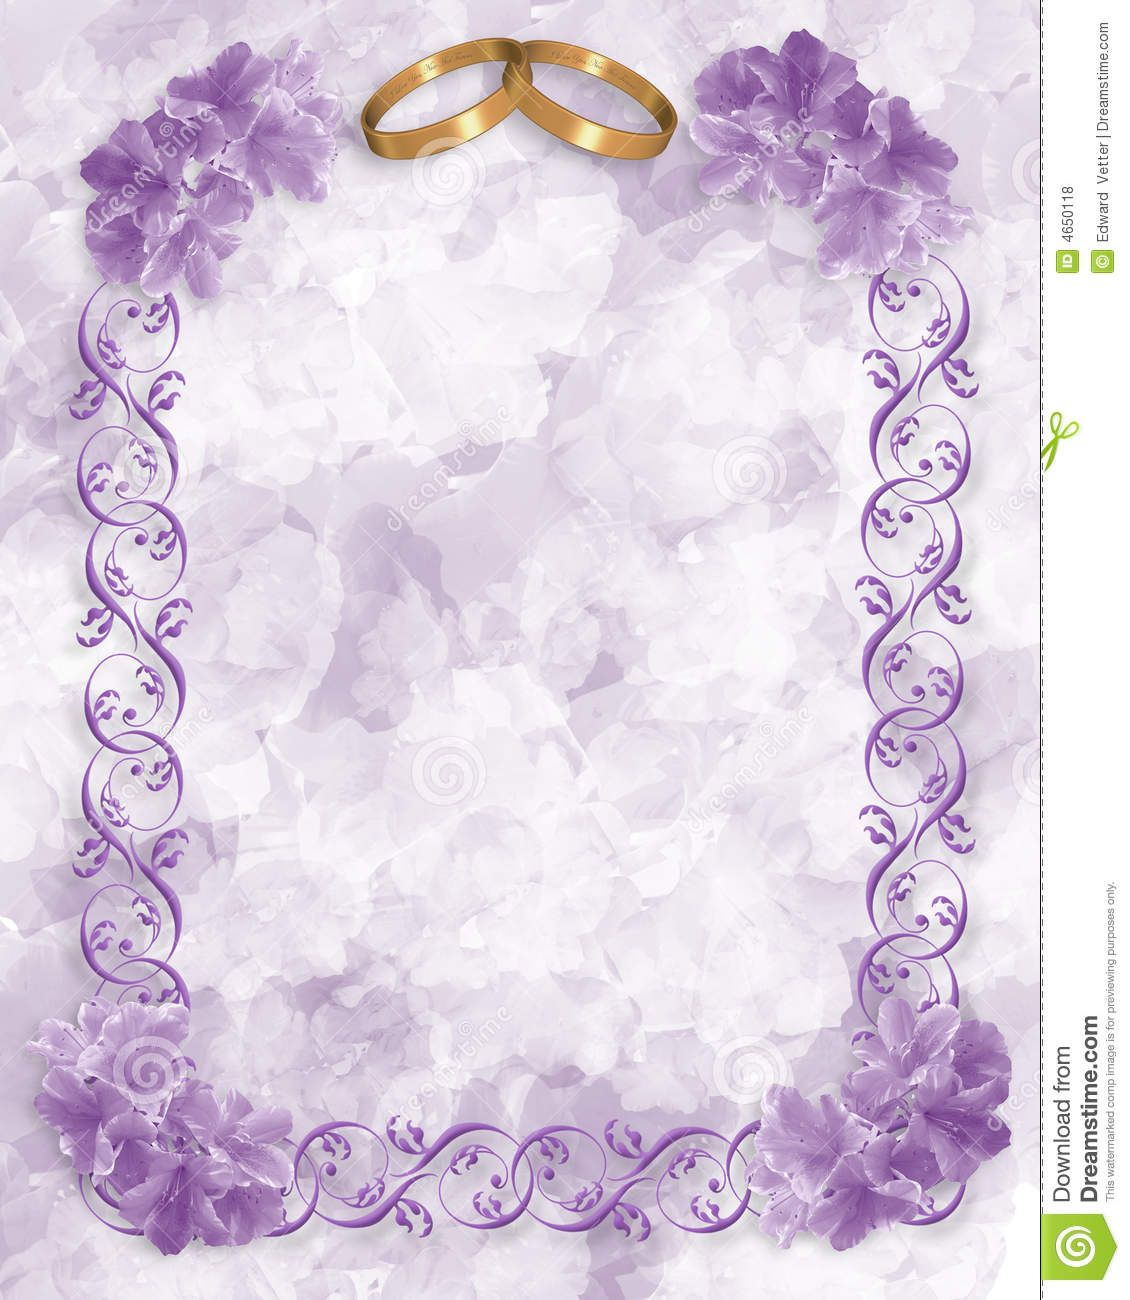 Lavender Border Illustration composition for wedding invitation